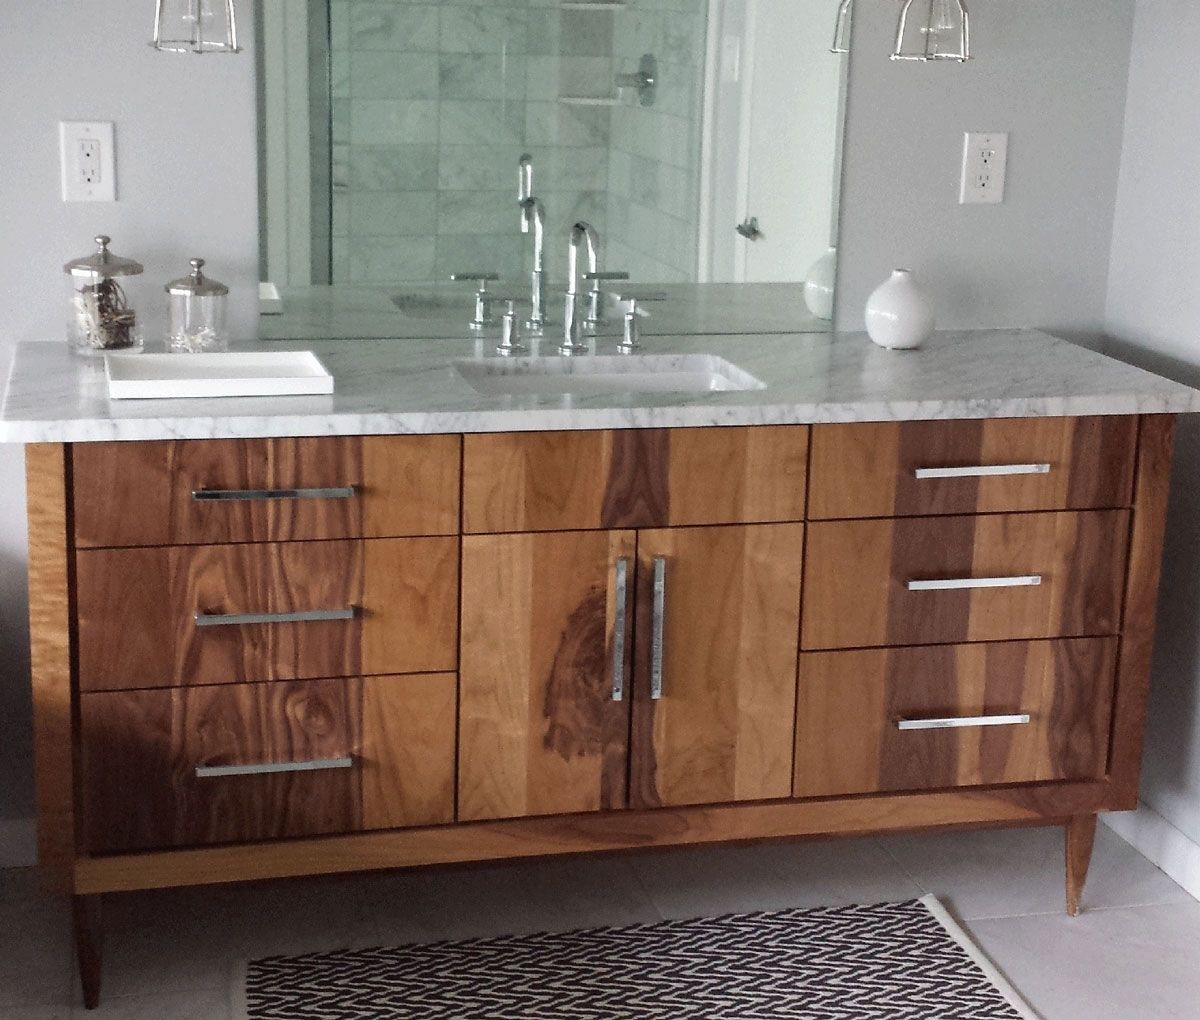 Handmade custom bathroom vanities by furniture by phoenix for Custom bathroom cabinets